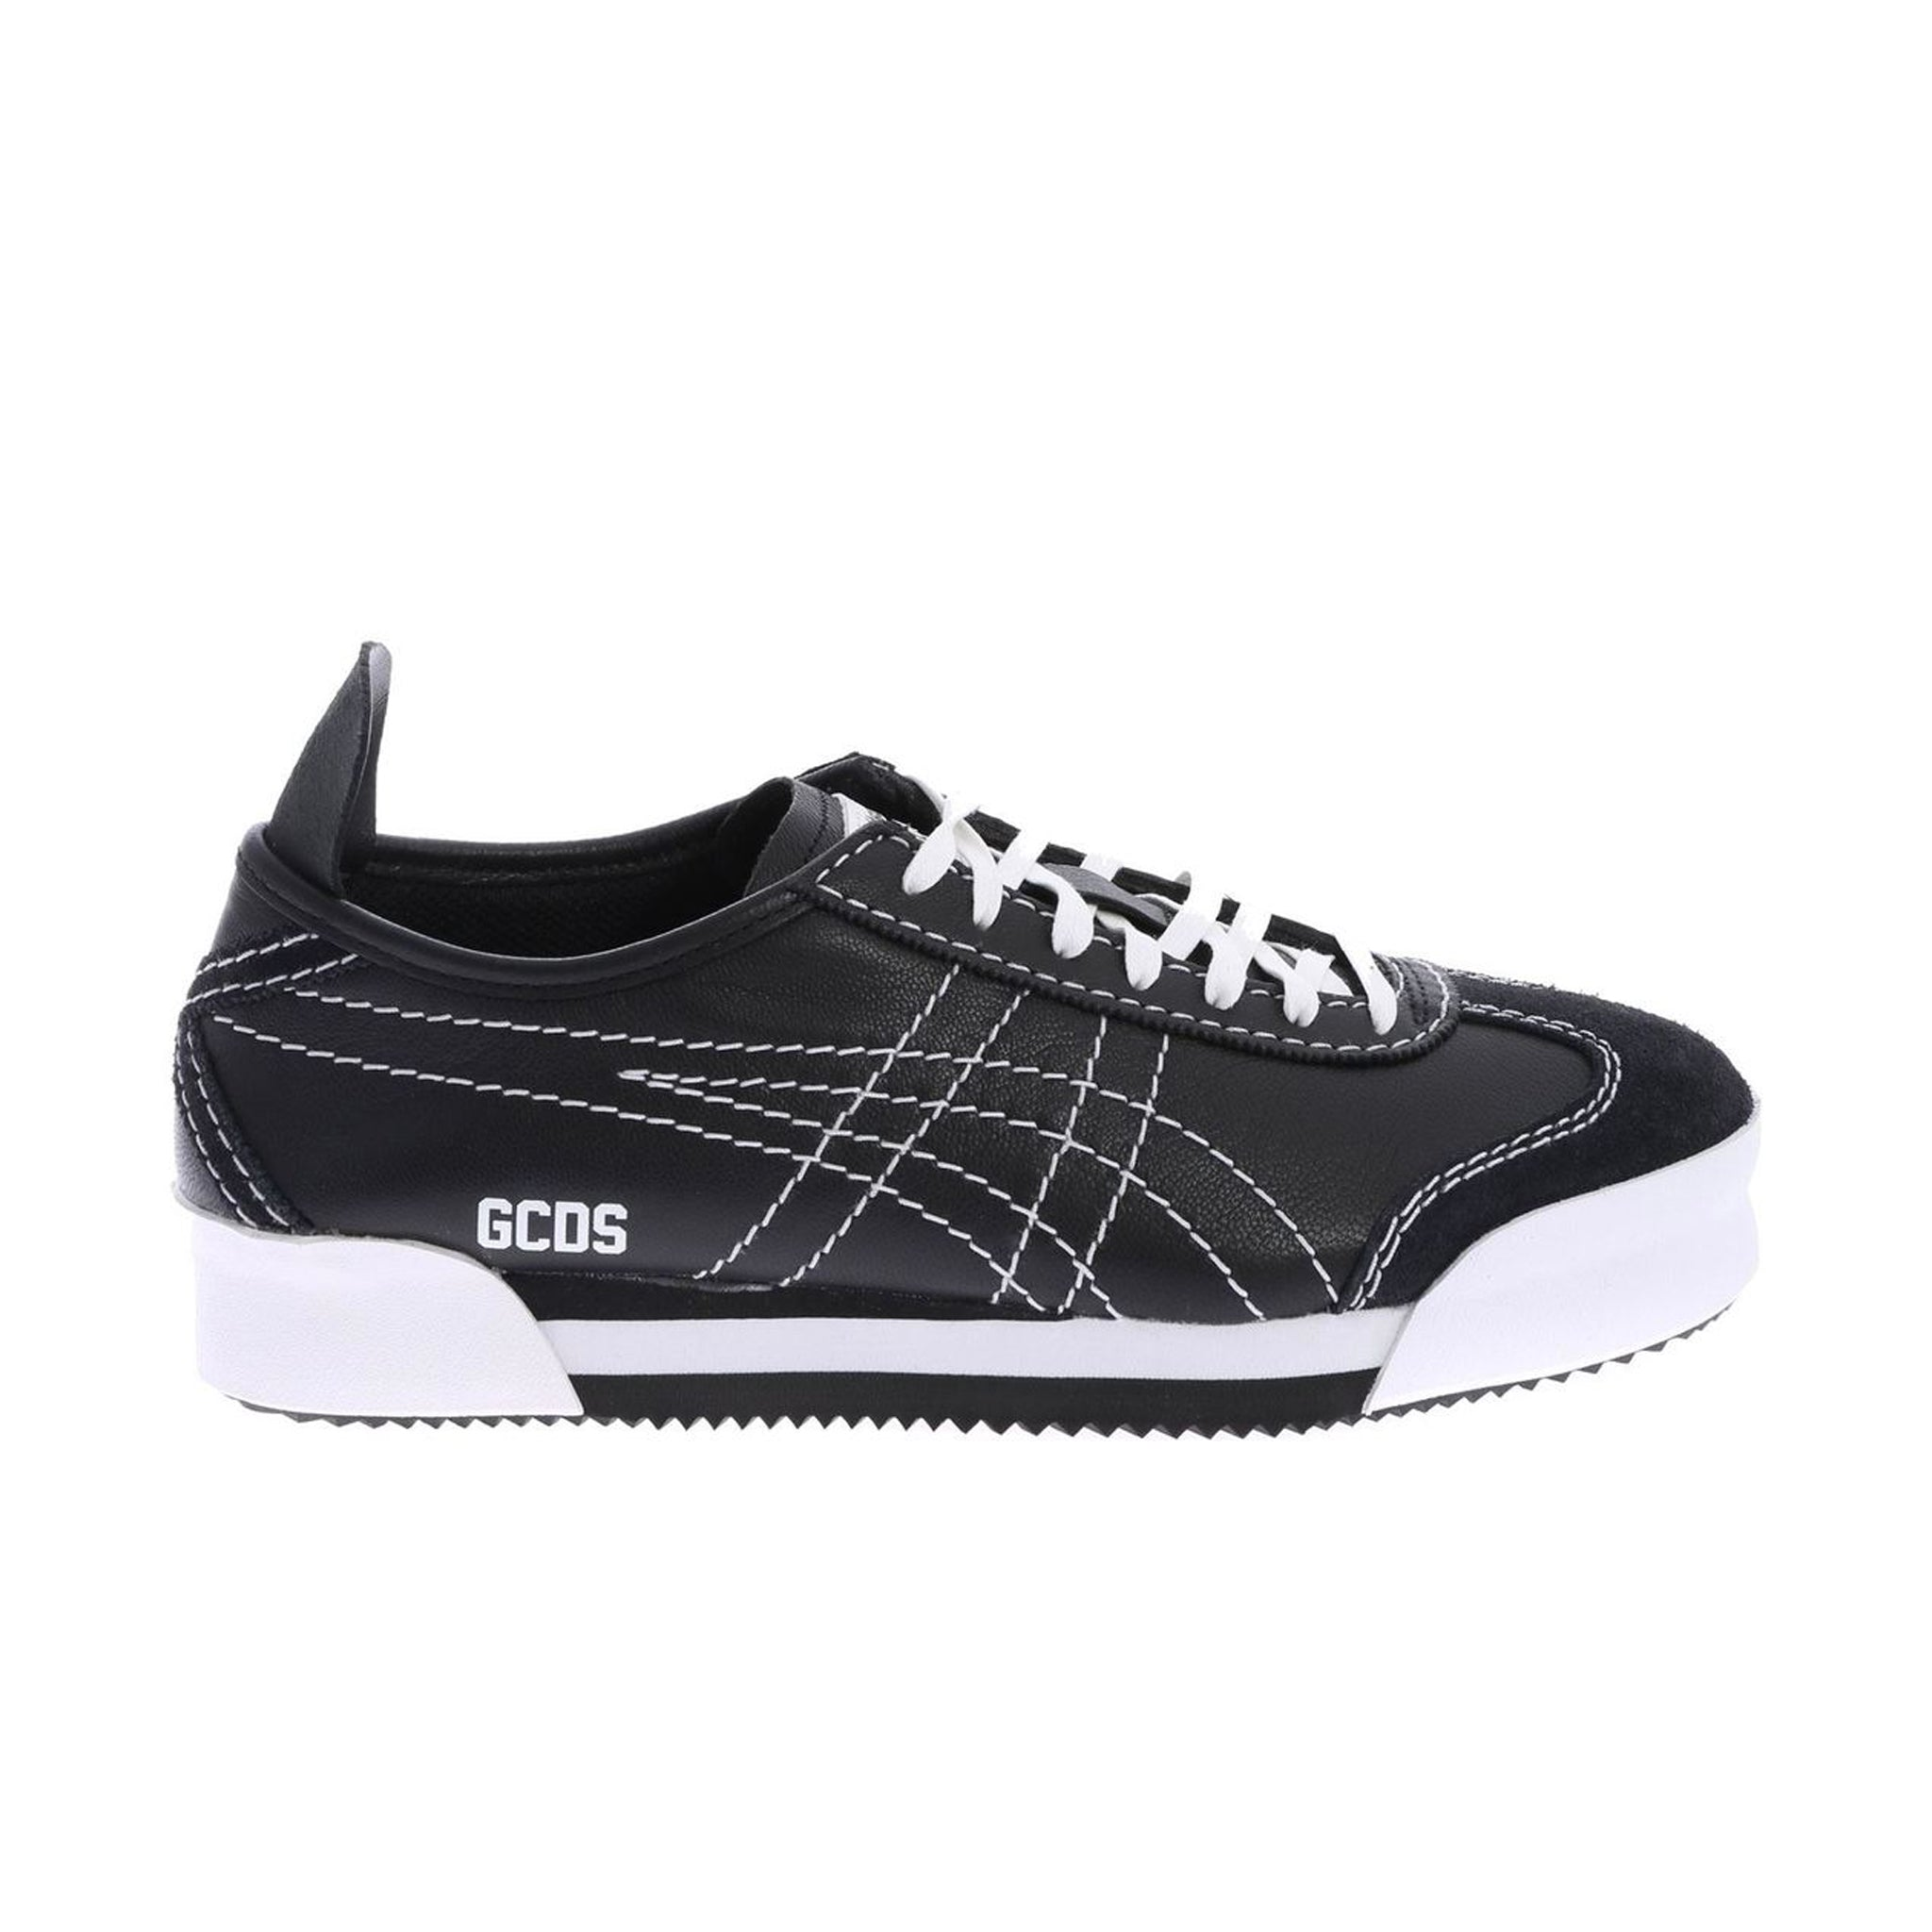 Gcds Logo Leather Sneakers